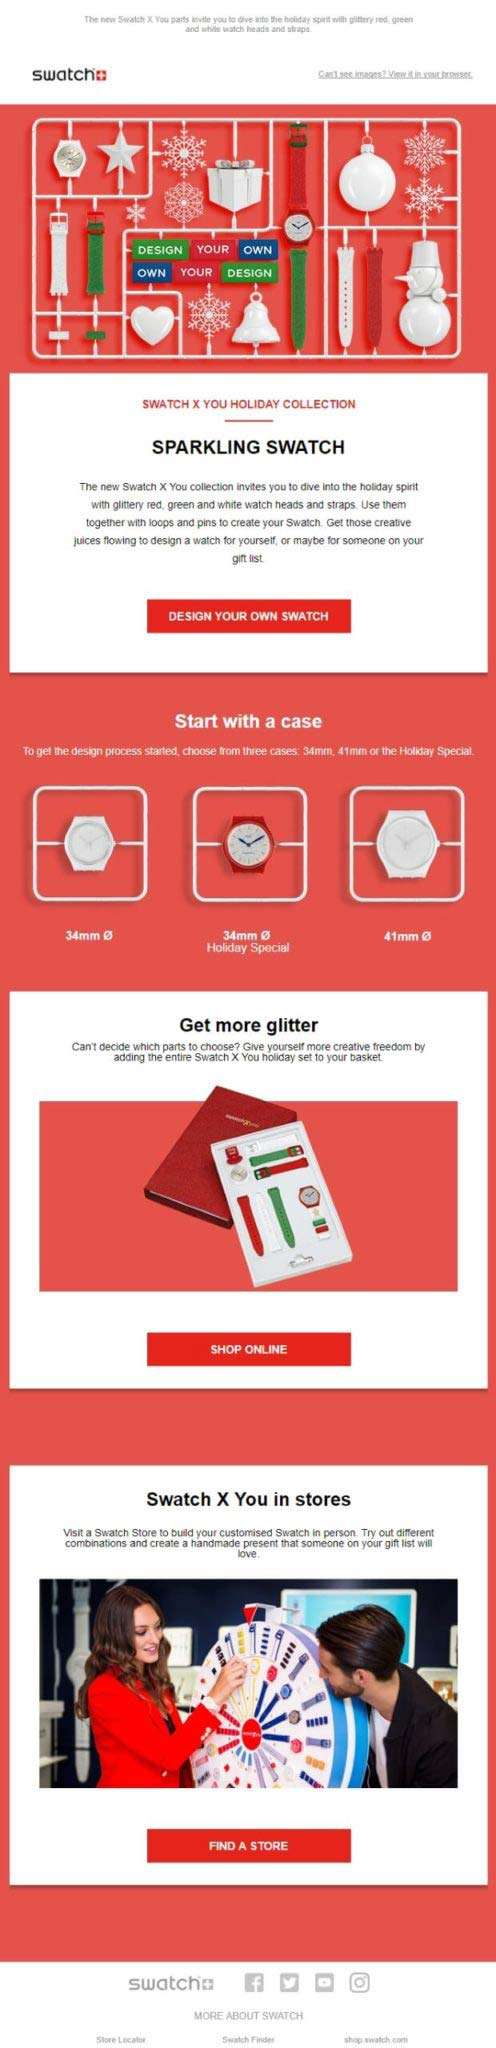 natale e newsletter Swatch